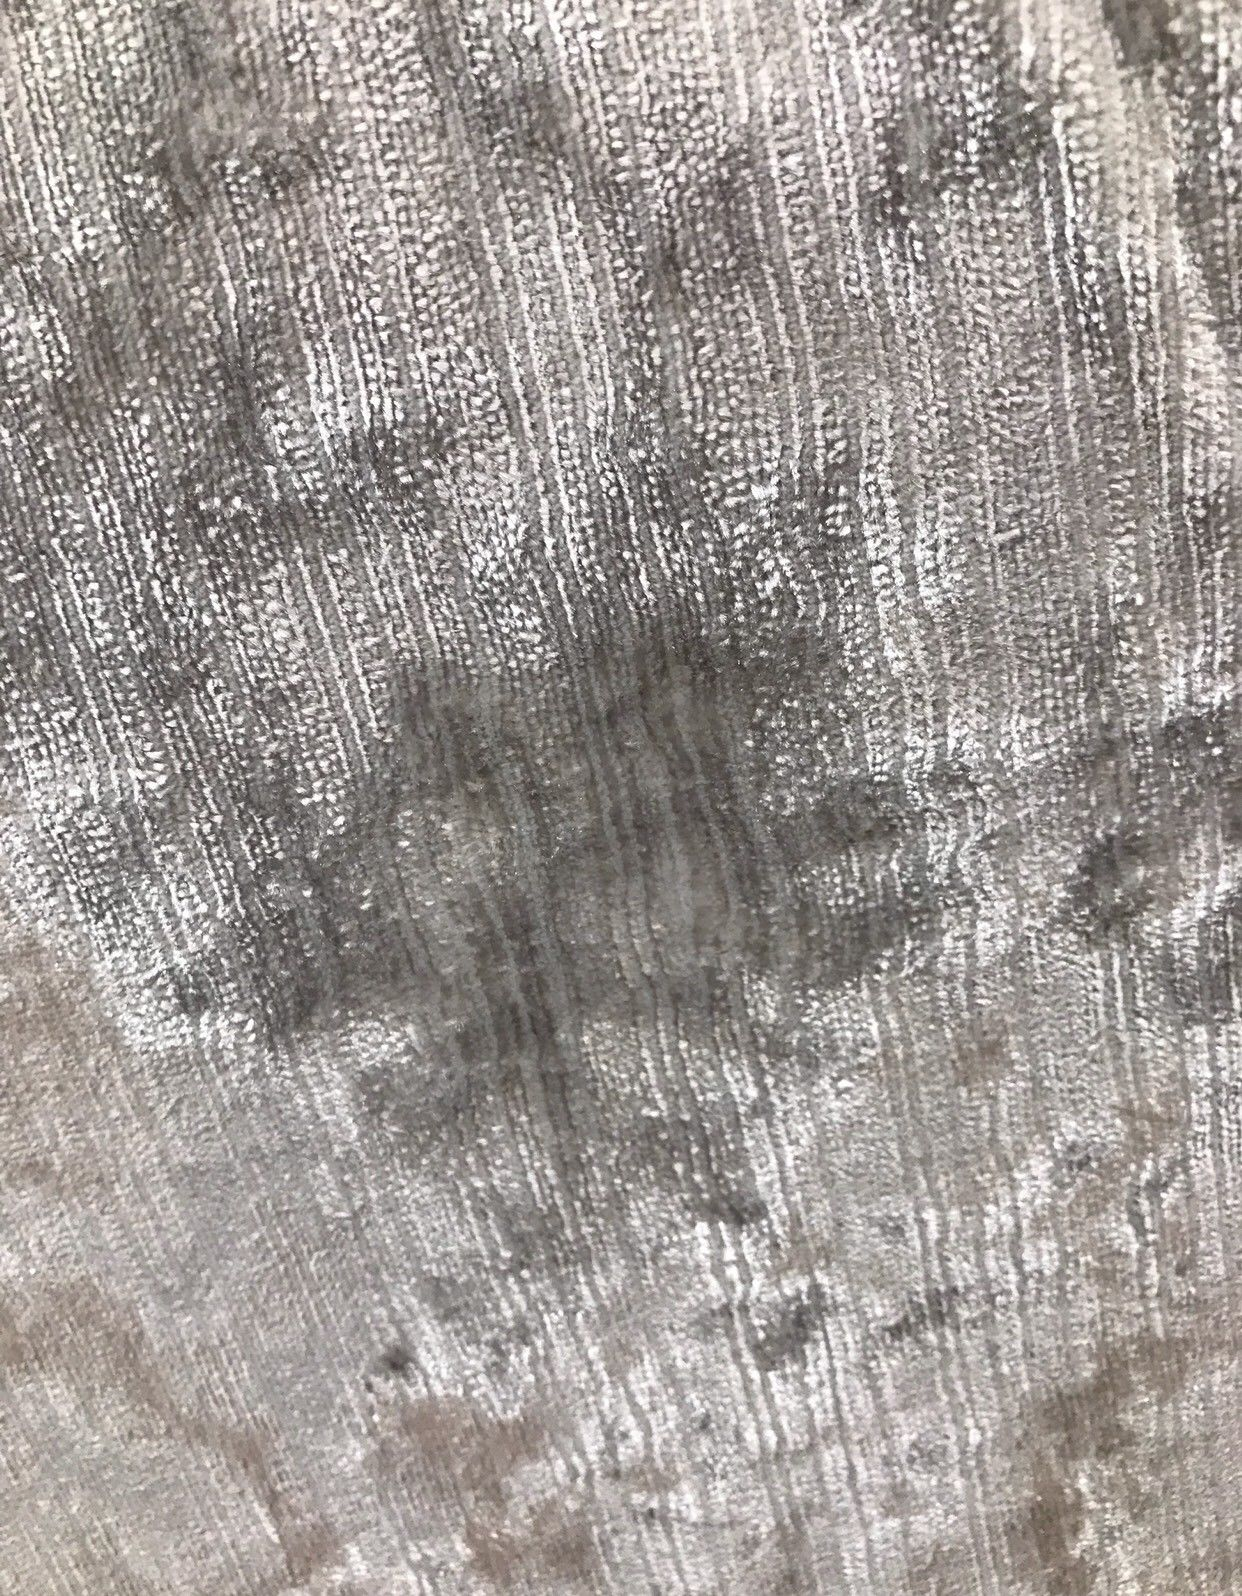 Designer Italian Crushed Velvet Chenille Upholstery Fabric - Silver Gray - Fancy Styles Fabric Pierre Frey Lee Jofa Brunschwig & Fils